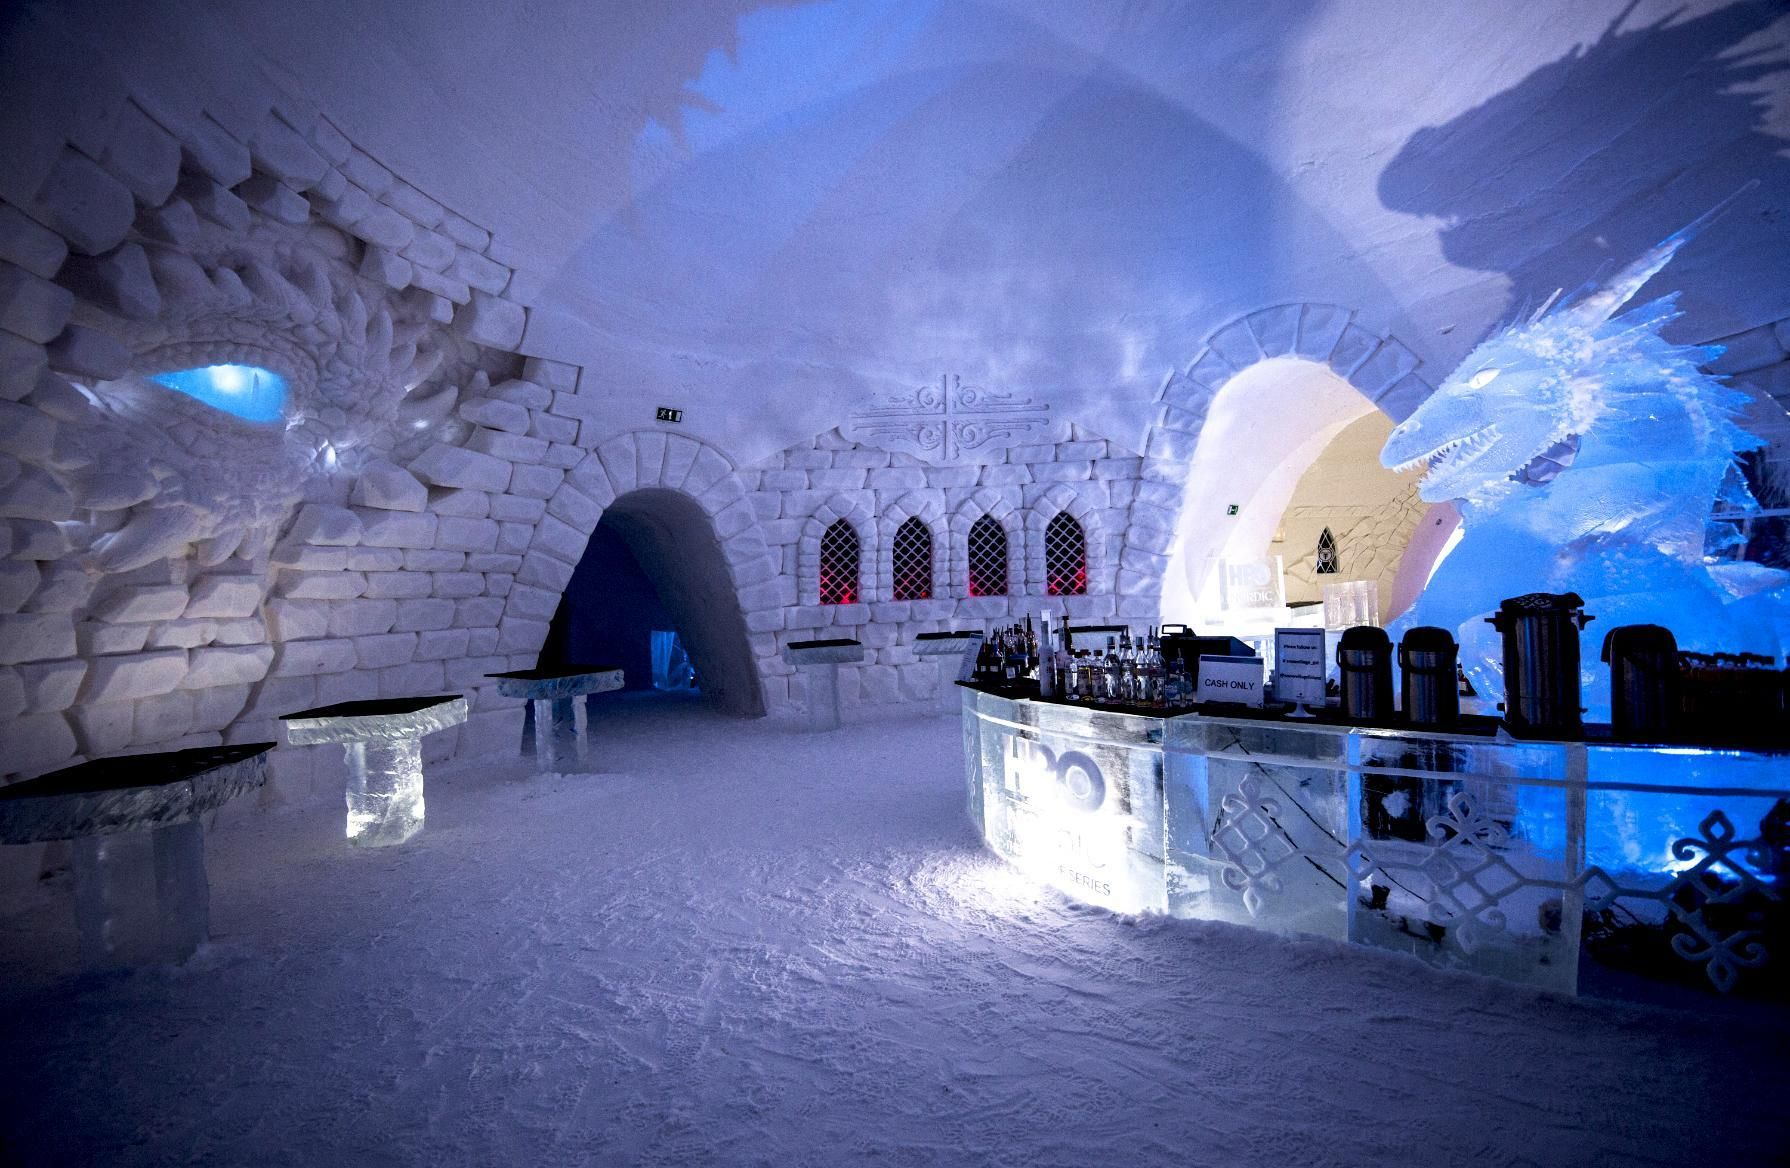 The Official Game Of Thrones Ice Hotel Restaurant Tables And